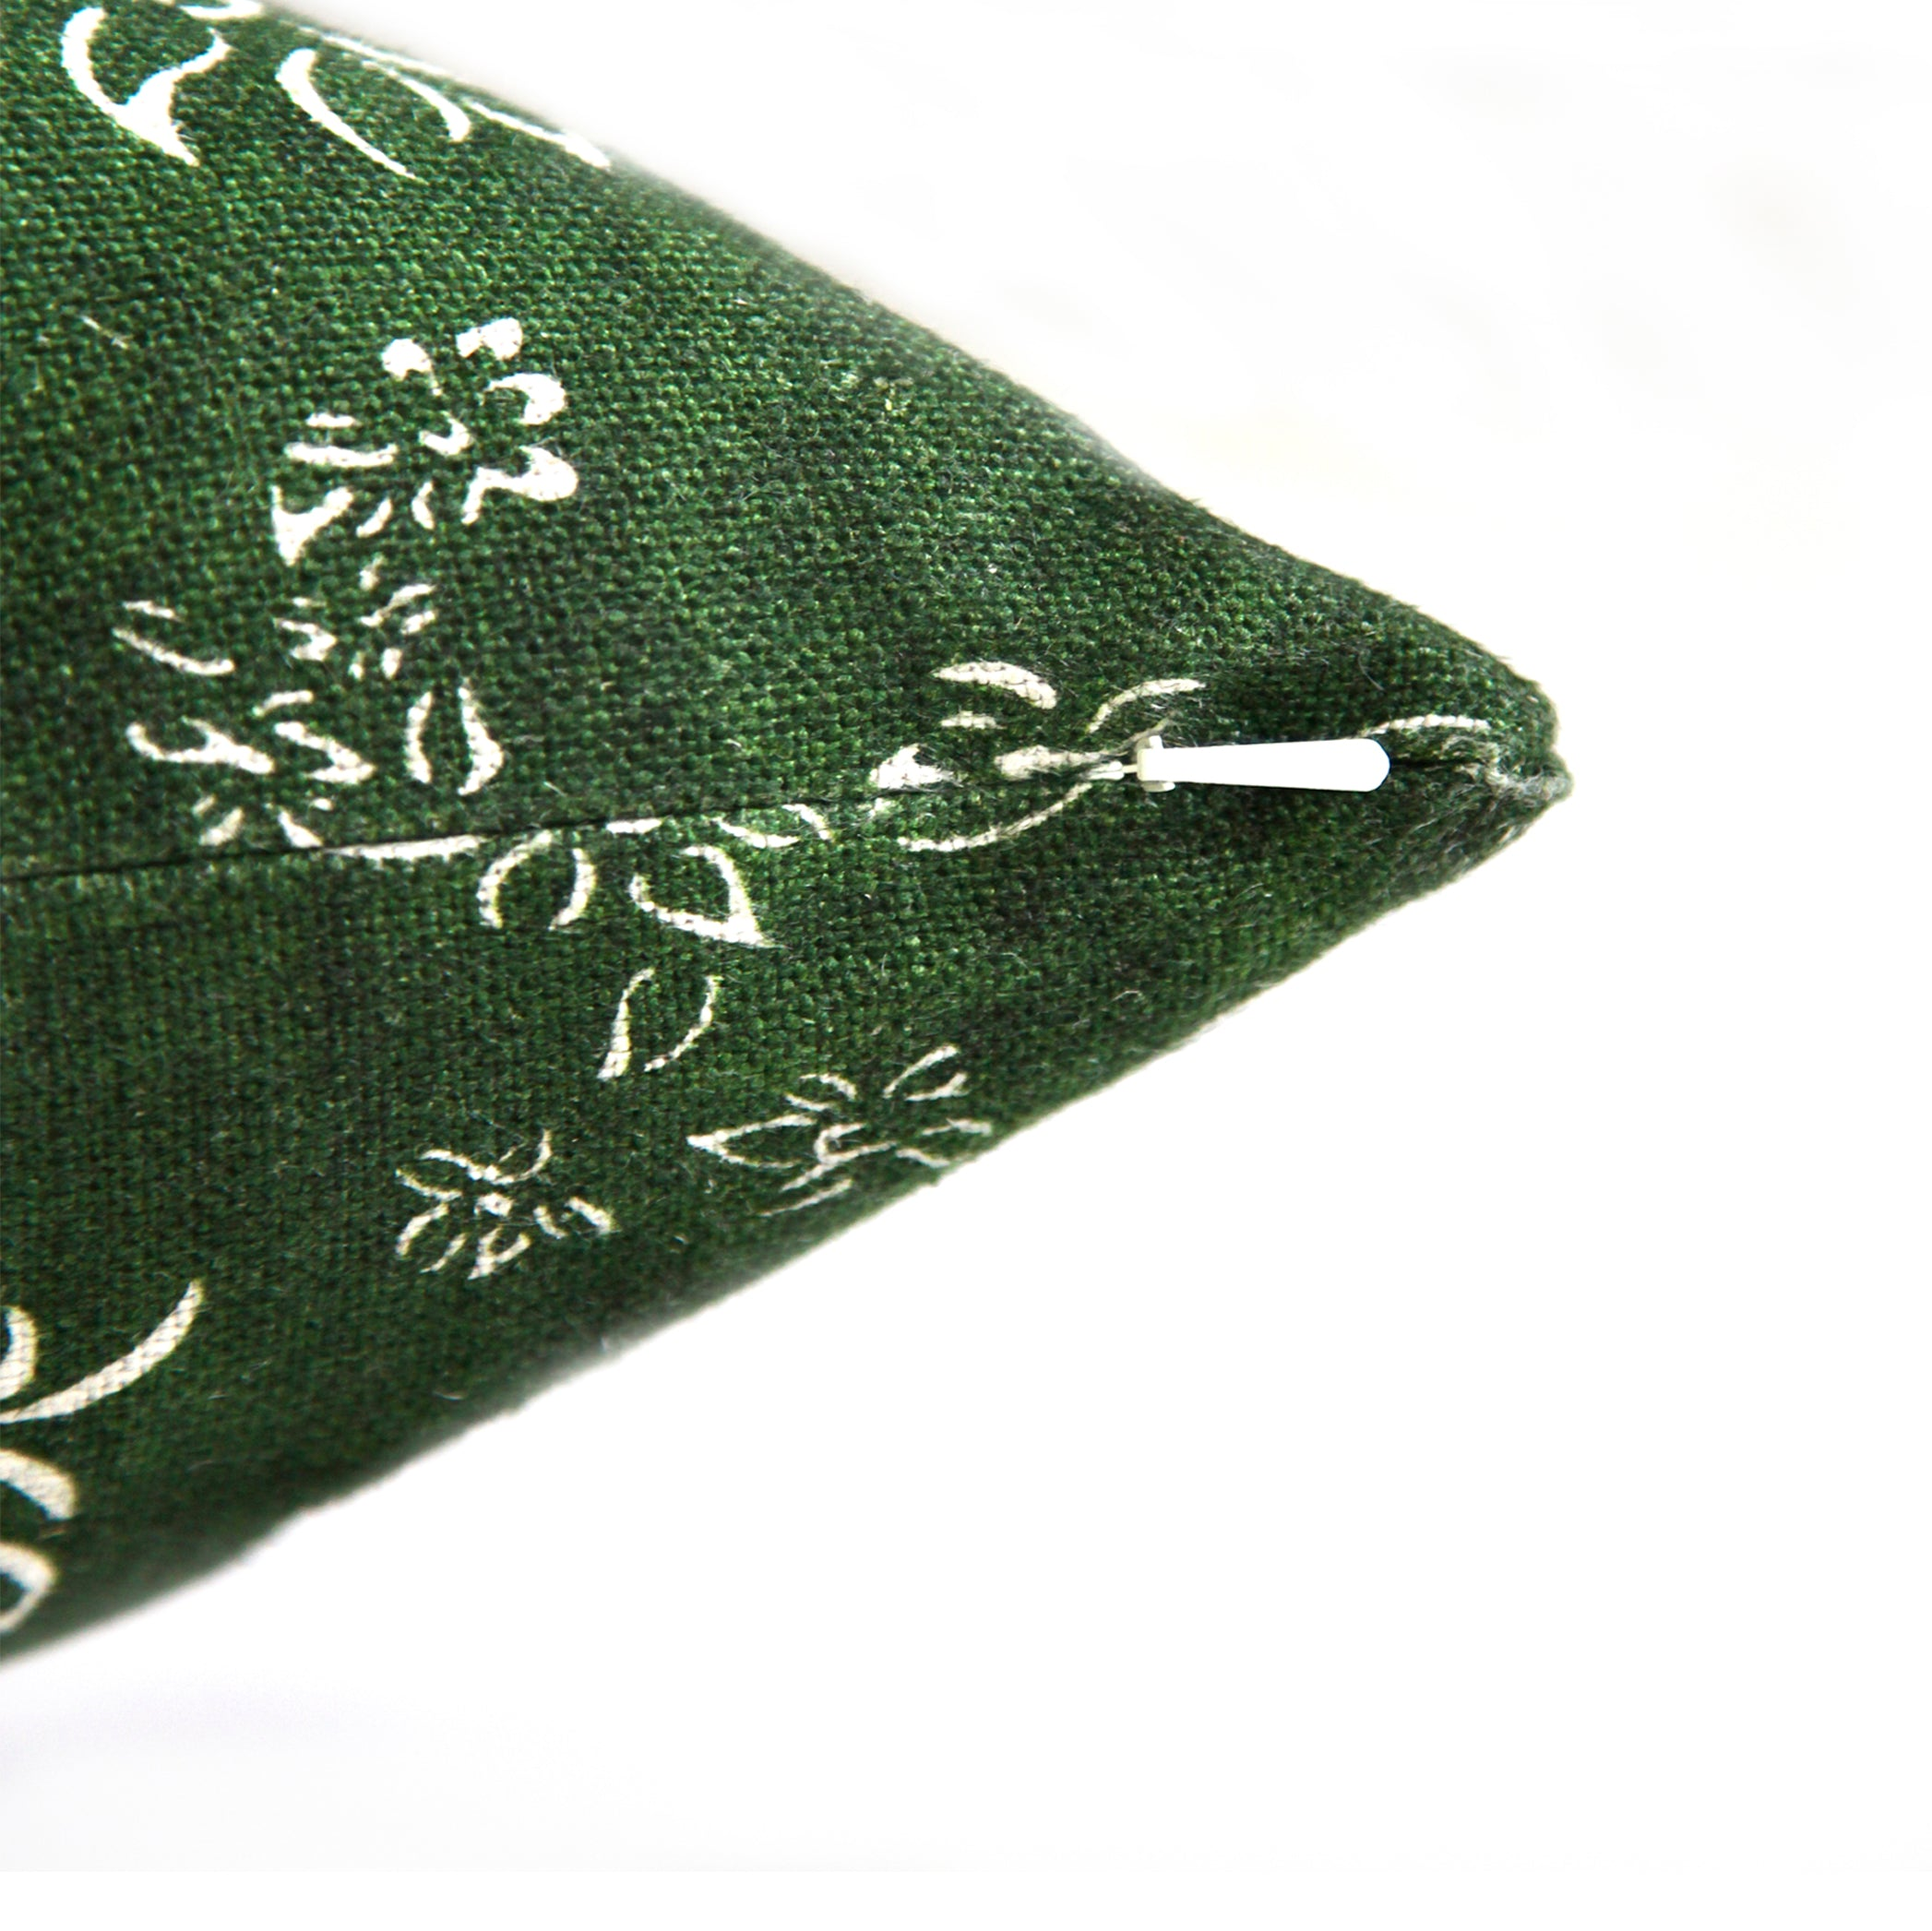 Heavy Linen Falling Flower Cushion in Full Field Green, 50cm x 50cm